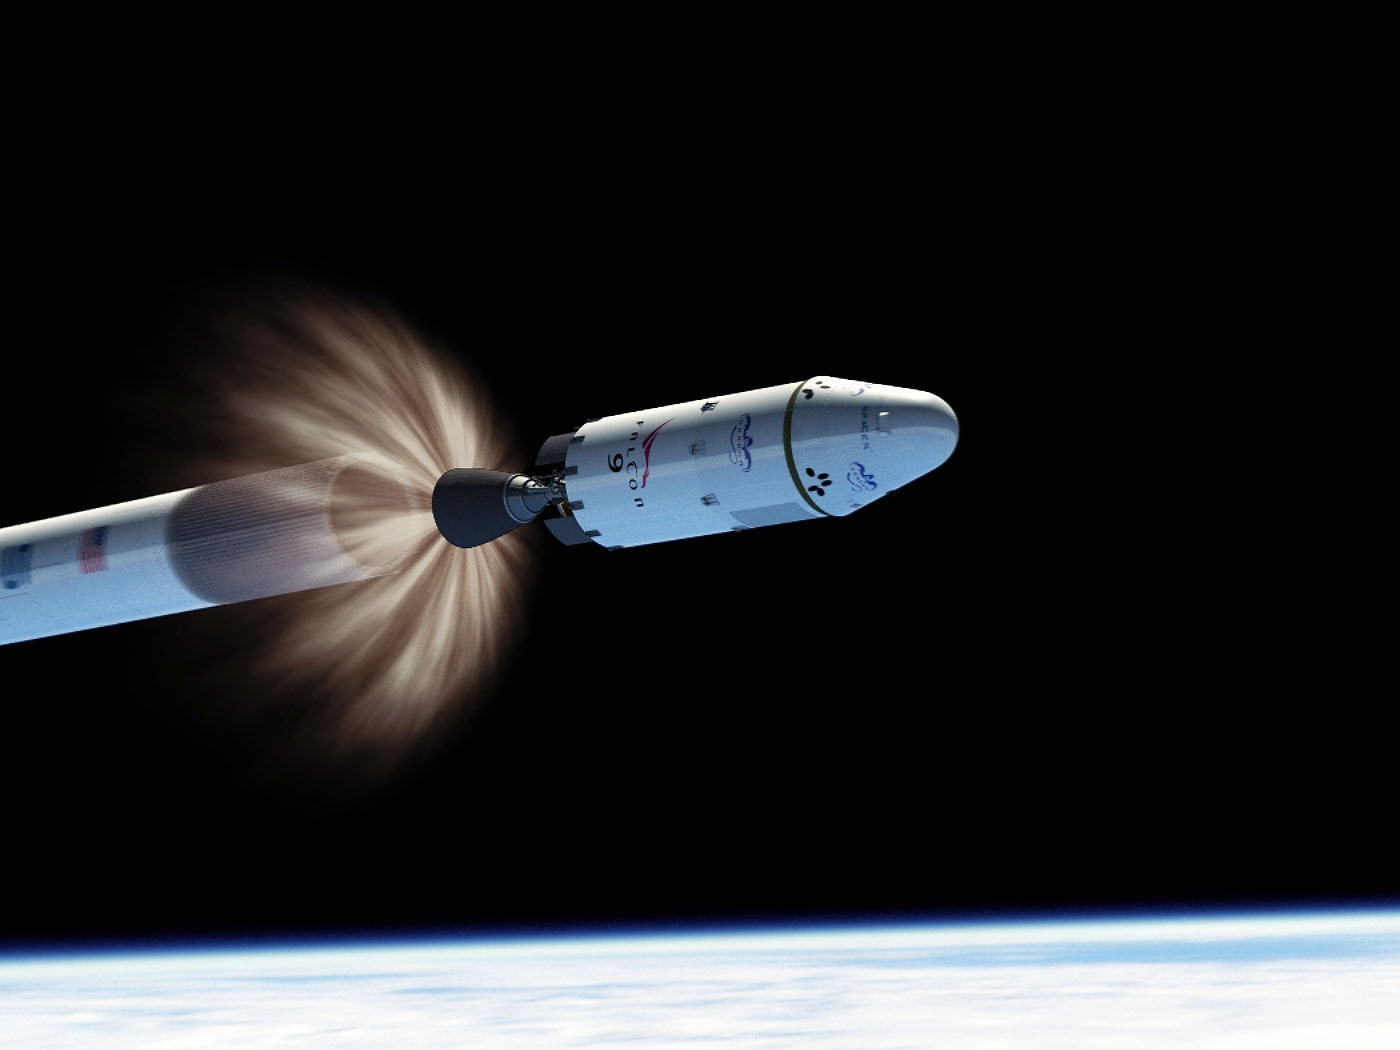 title 51 national and commercial space Presidential memoranda space policy directive-2, streamlining regulations on commercial use of space.